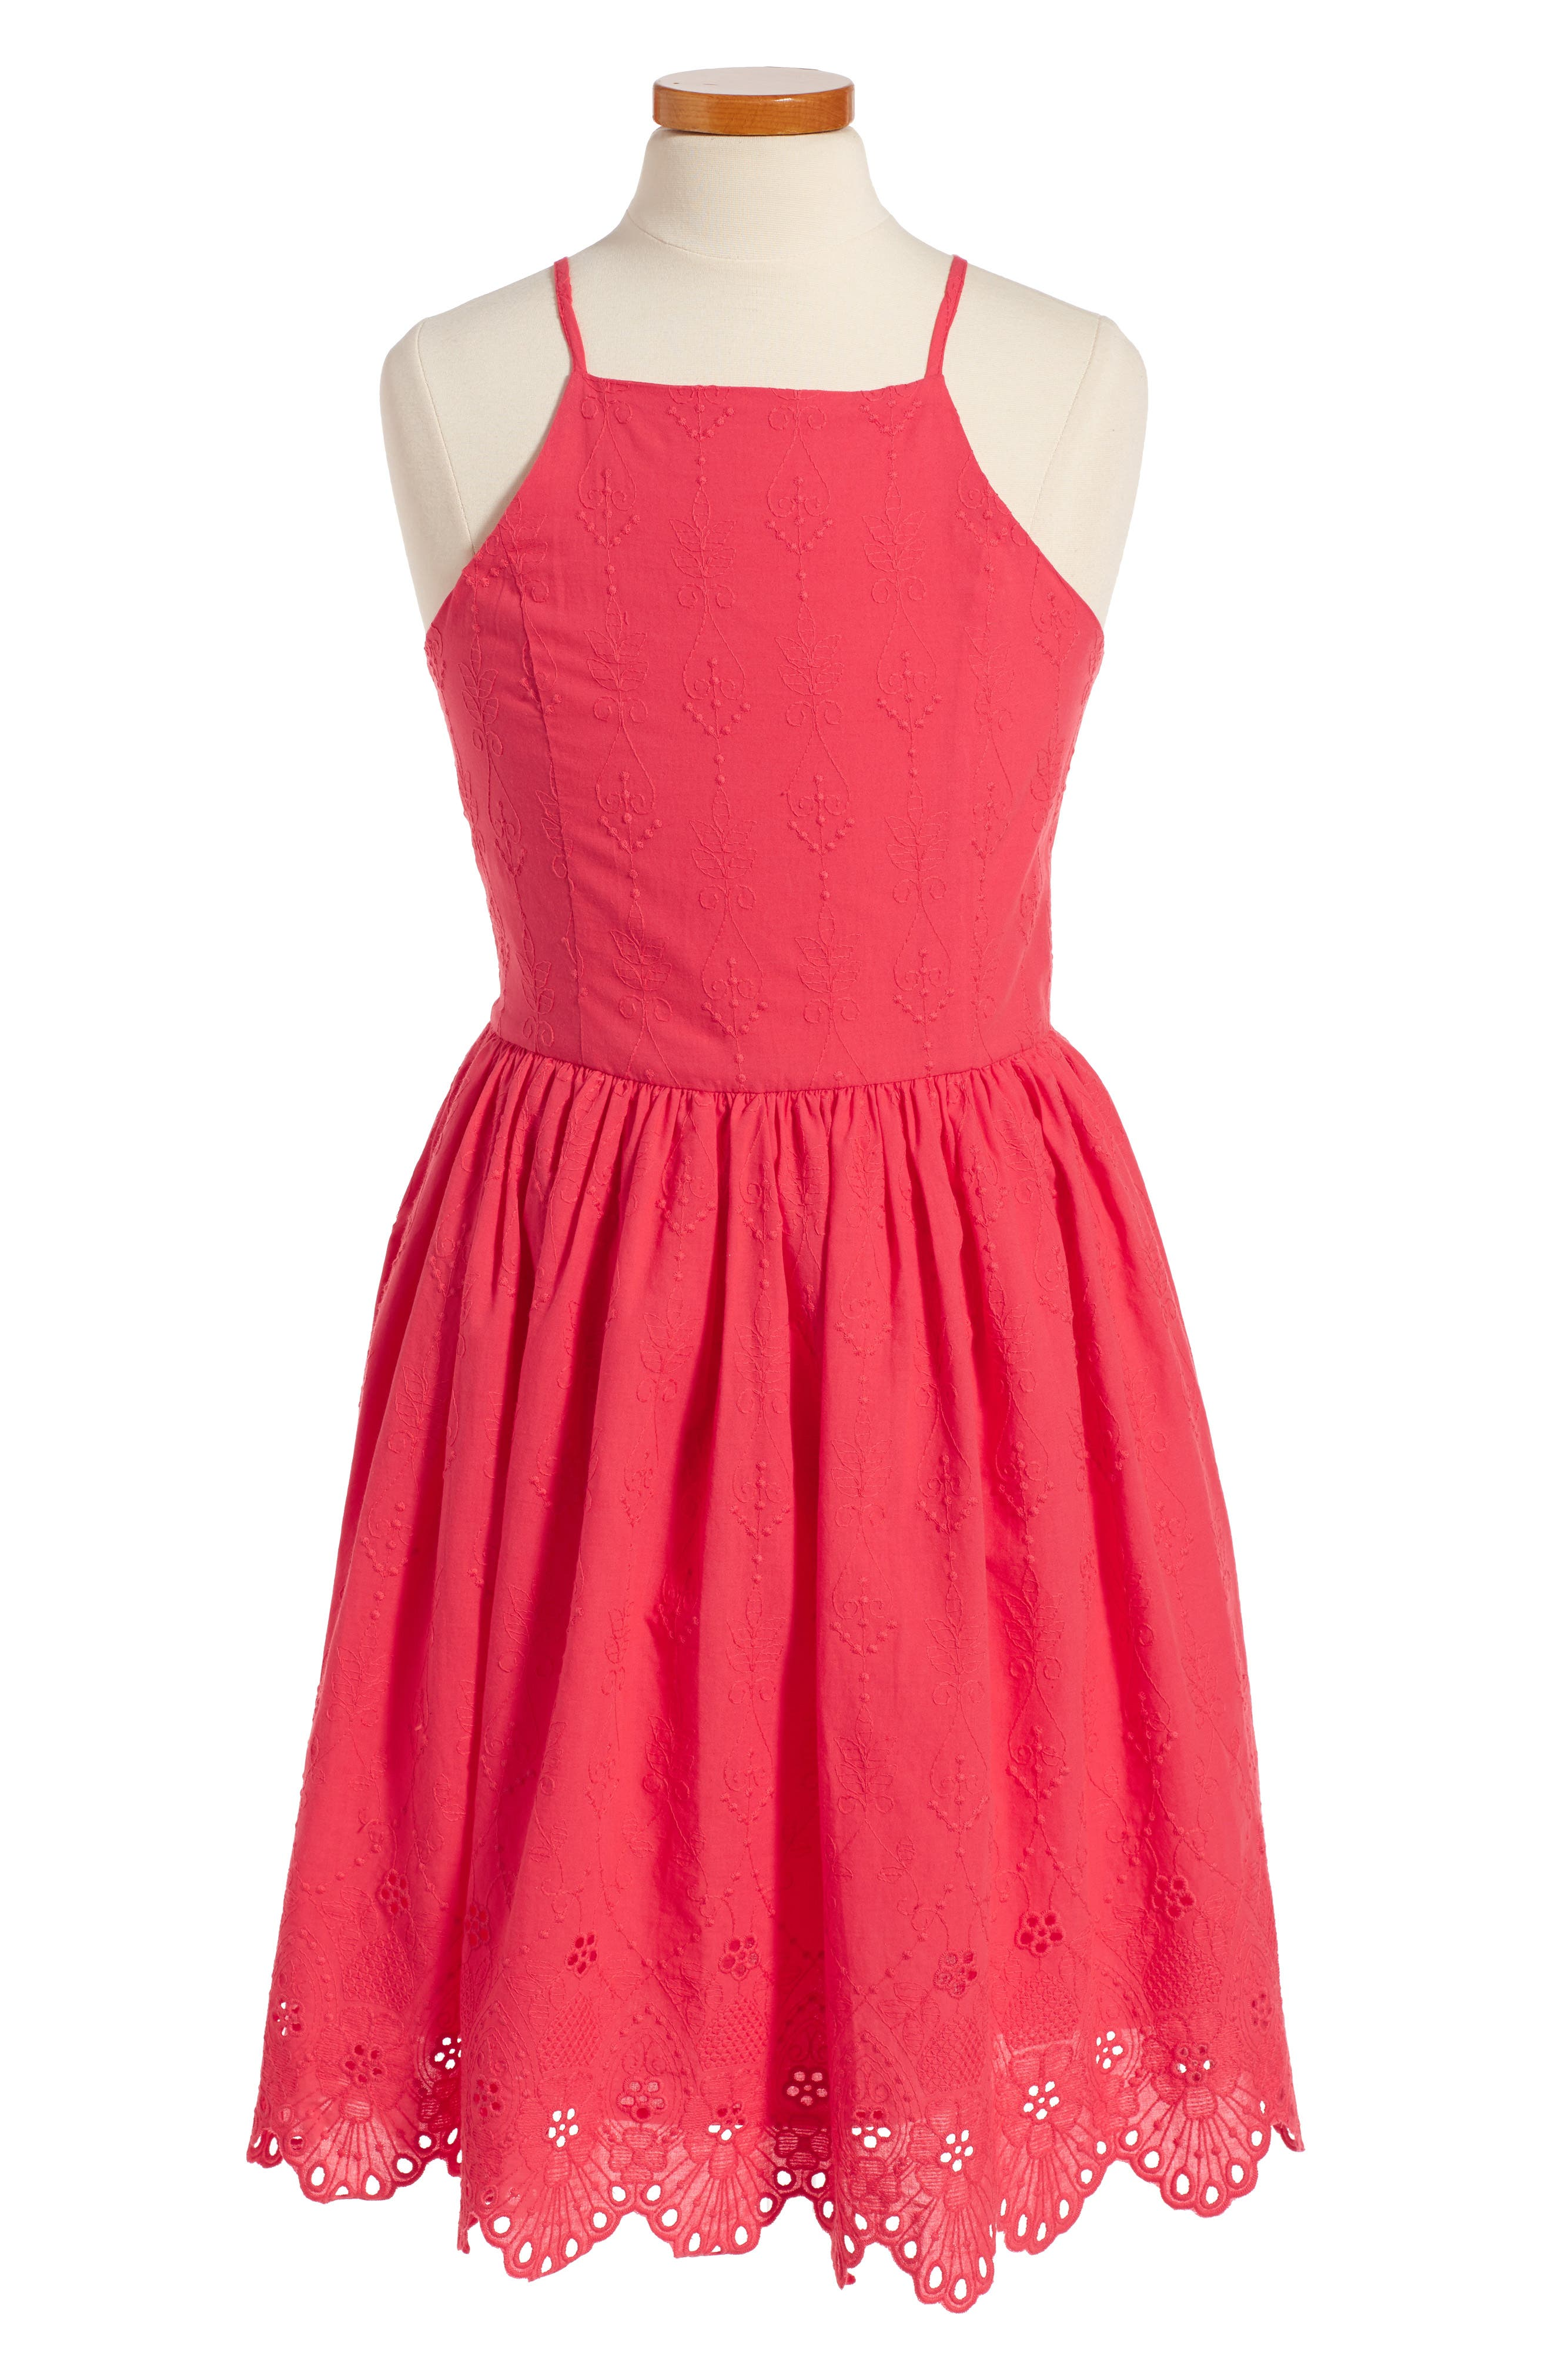 Main Image - Ruby & Bloom Embroidered Dress (Big Girls)